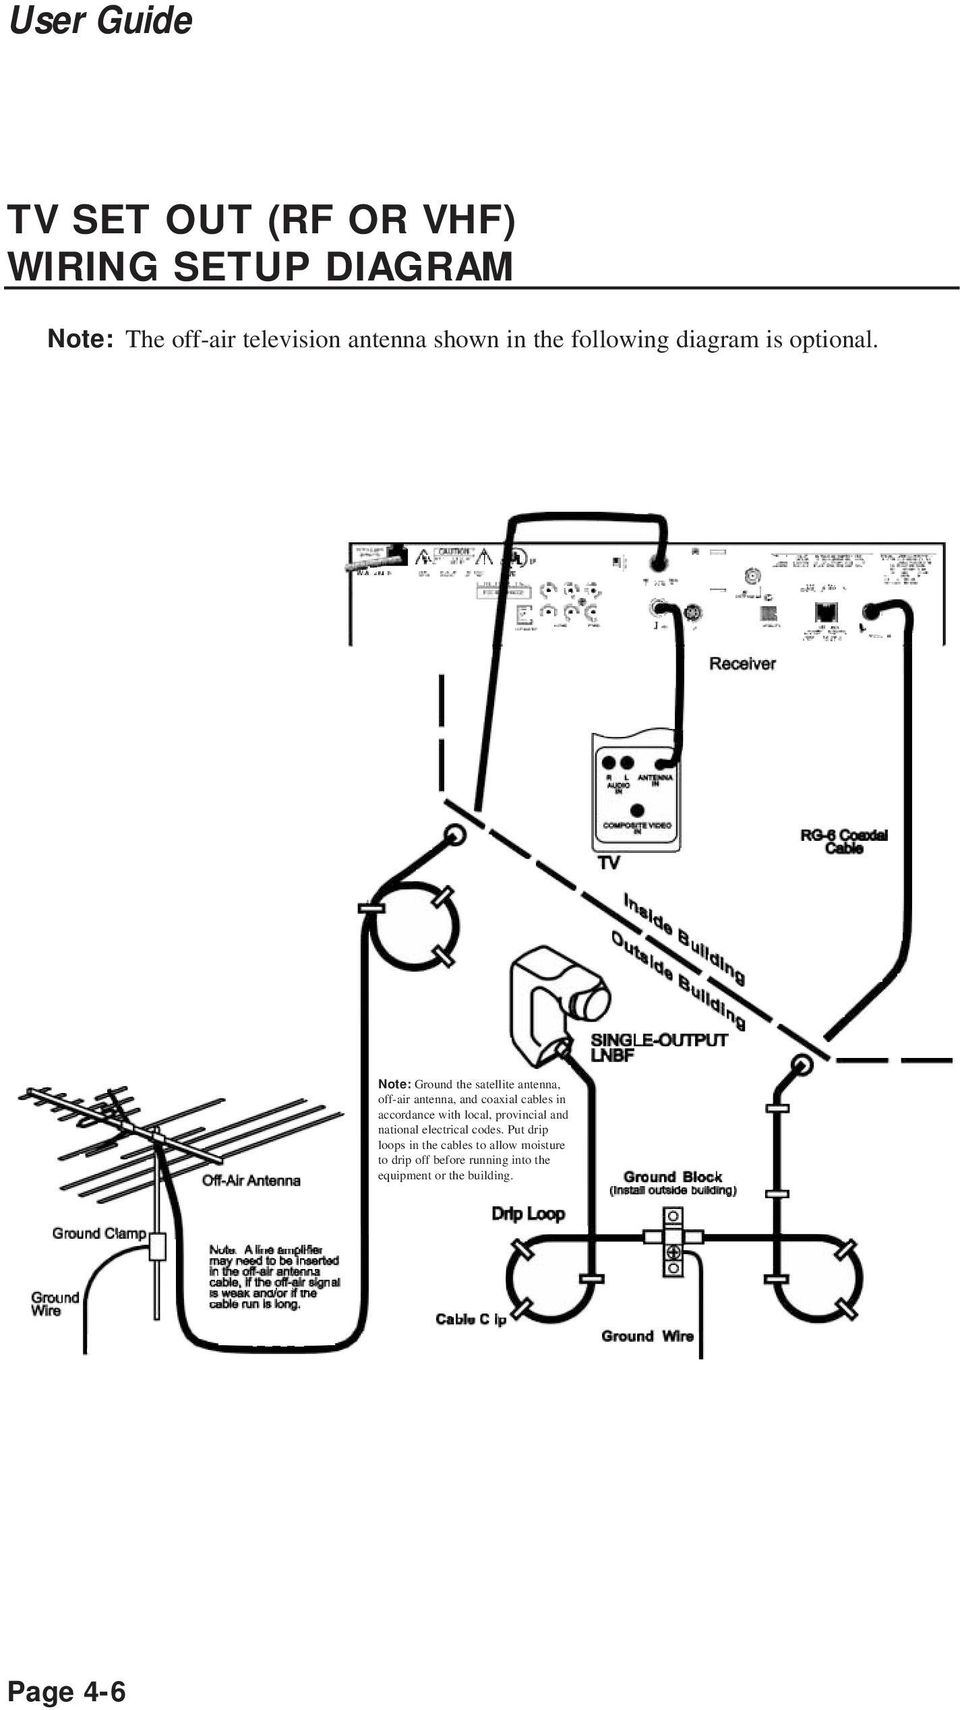 satellite dish connection diagram satellite image satellite dish wiring diagram sandropainting com on satellite dish connection diagram